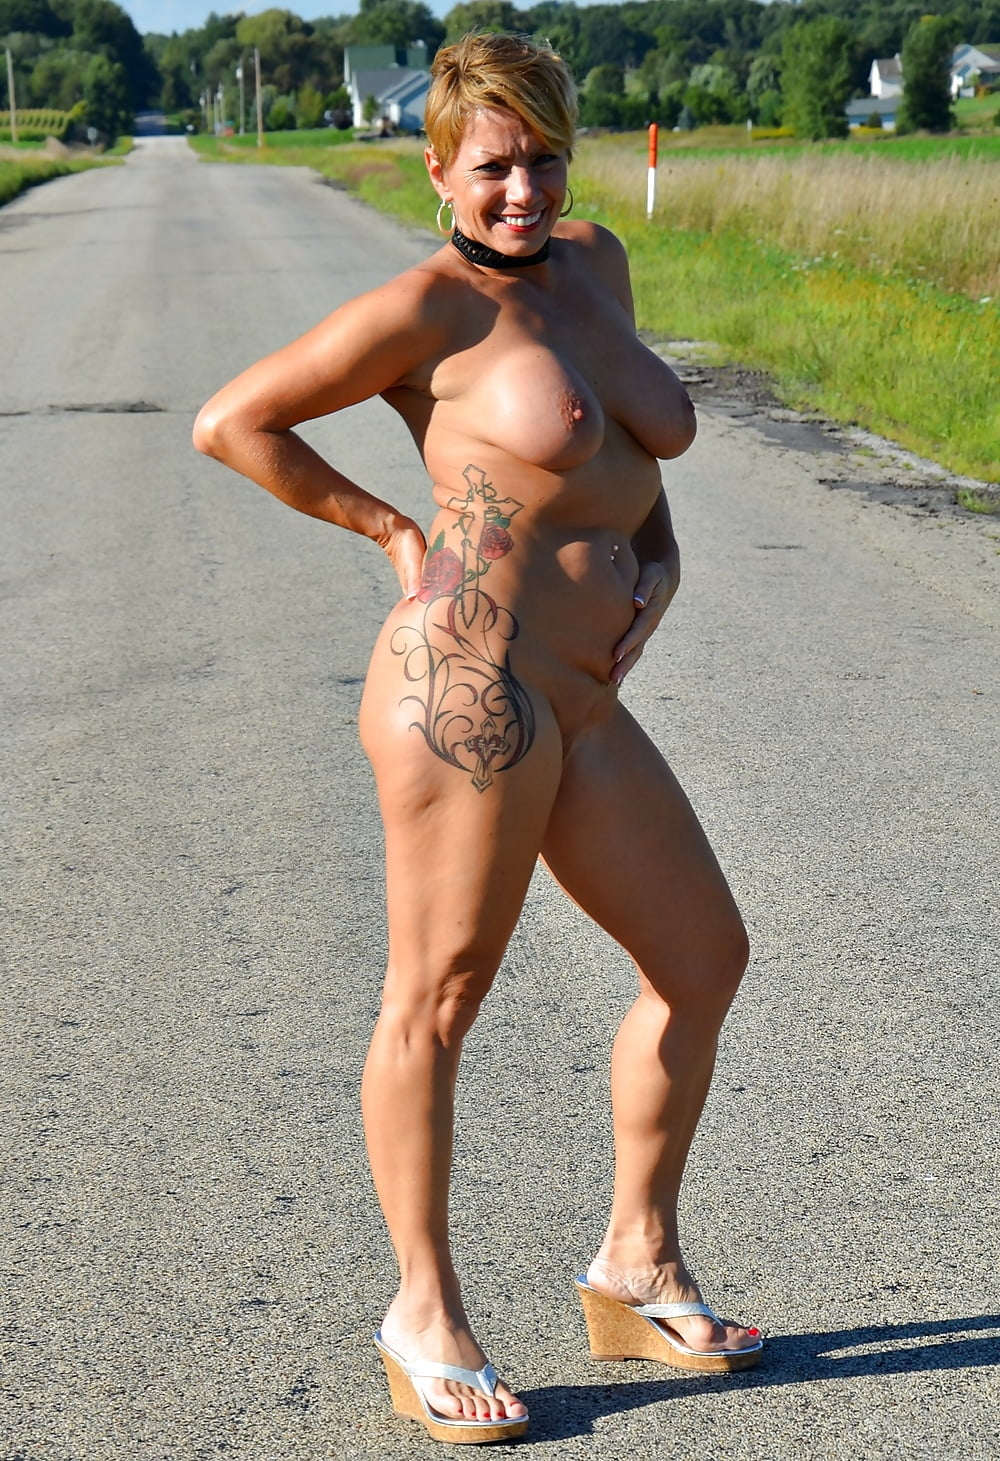 Milf sripped nude in public, gay redhead boy pictures